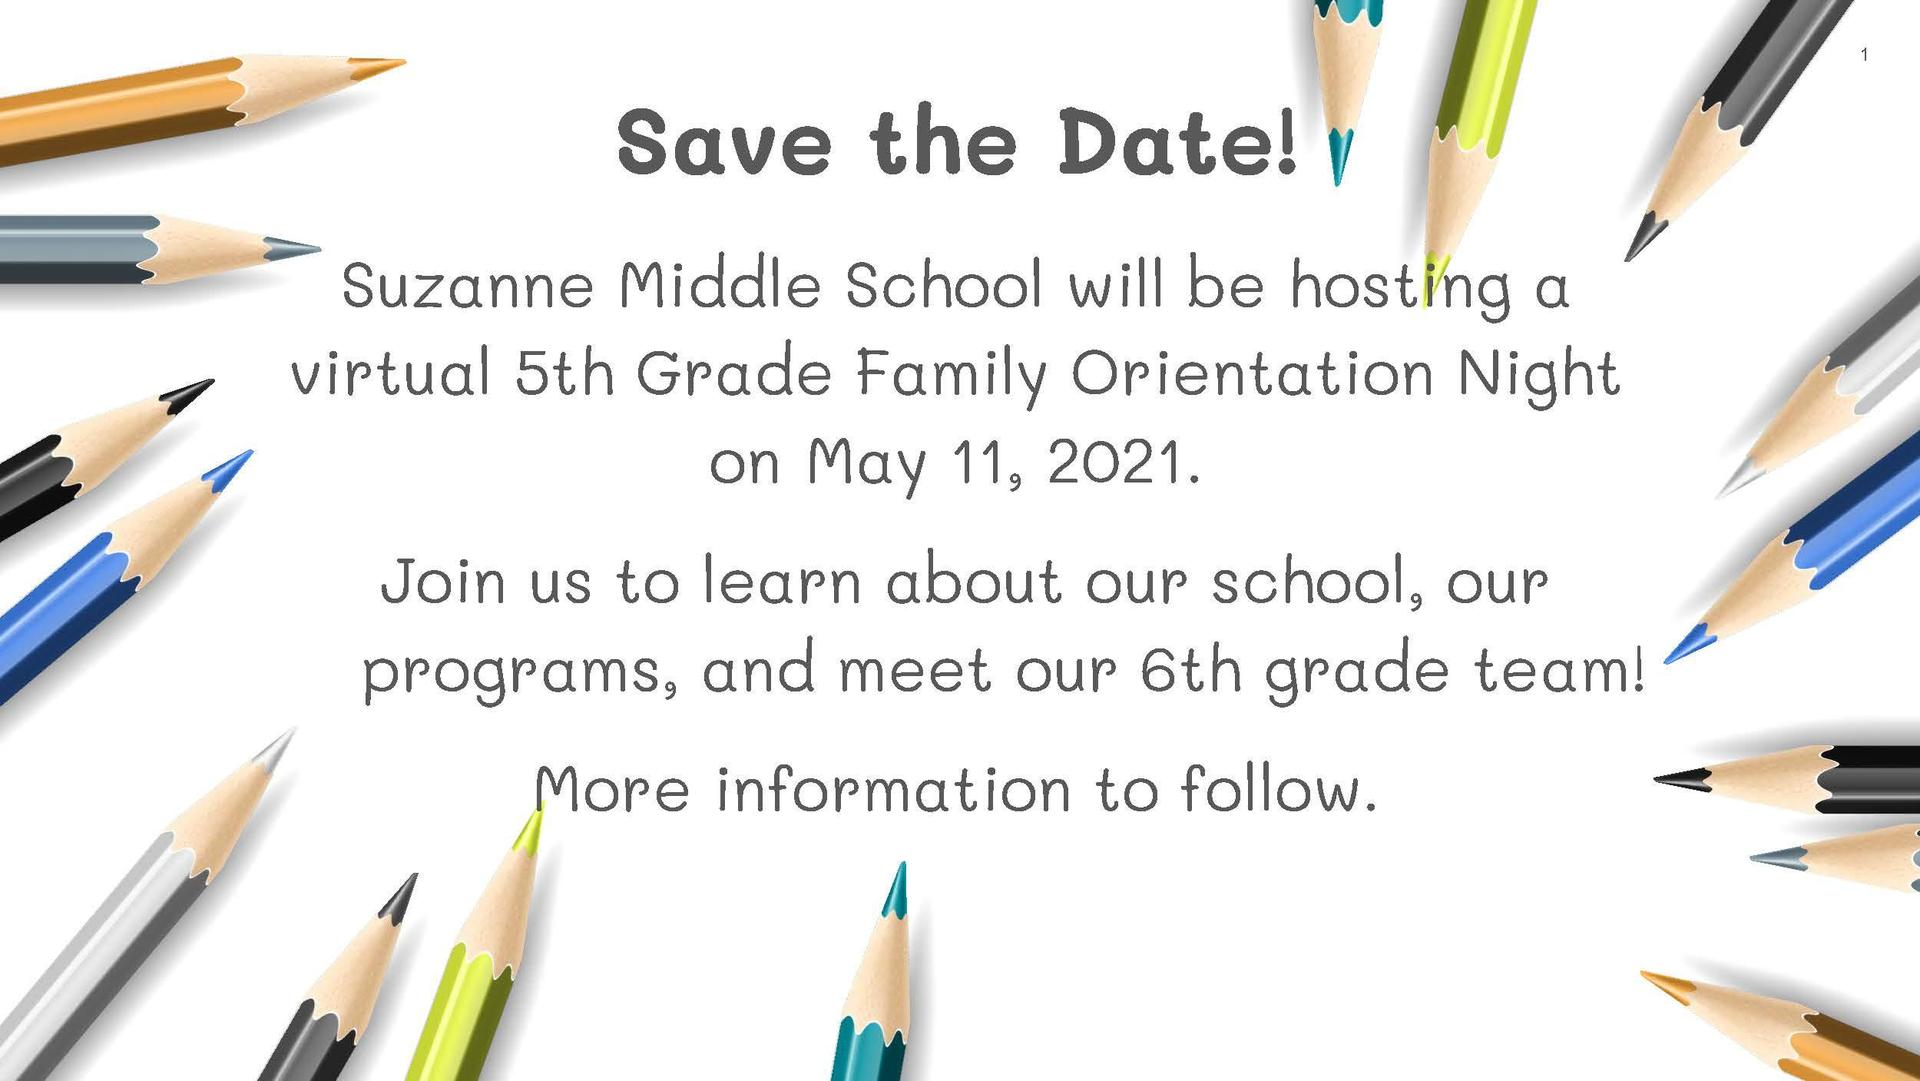 Suzanne Middle School Orientation